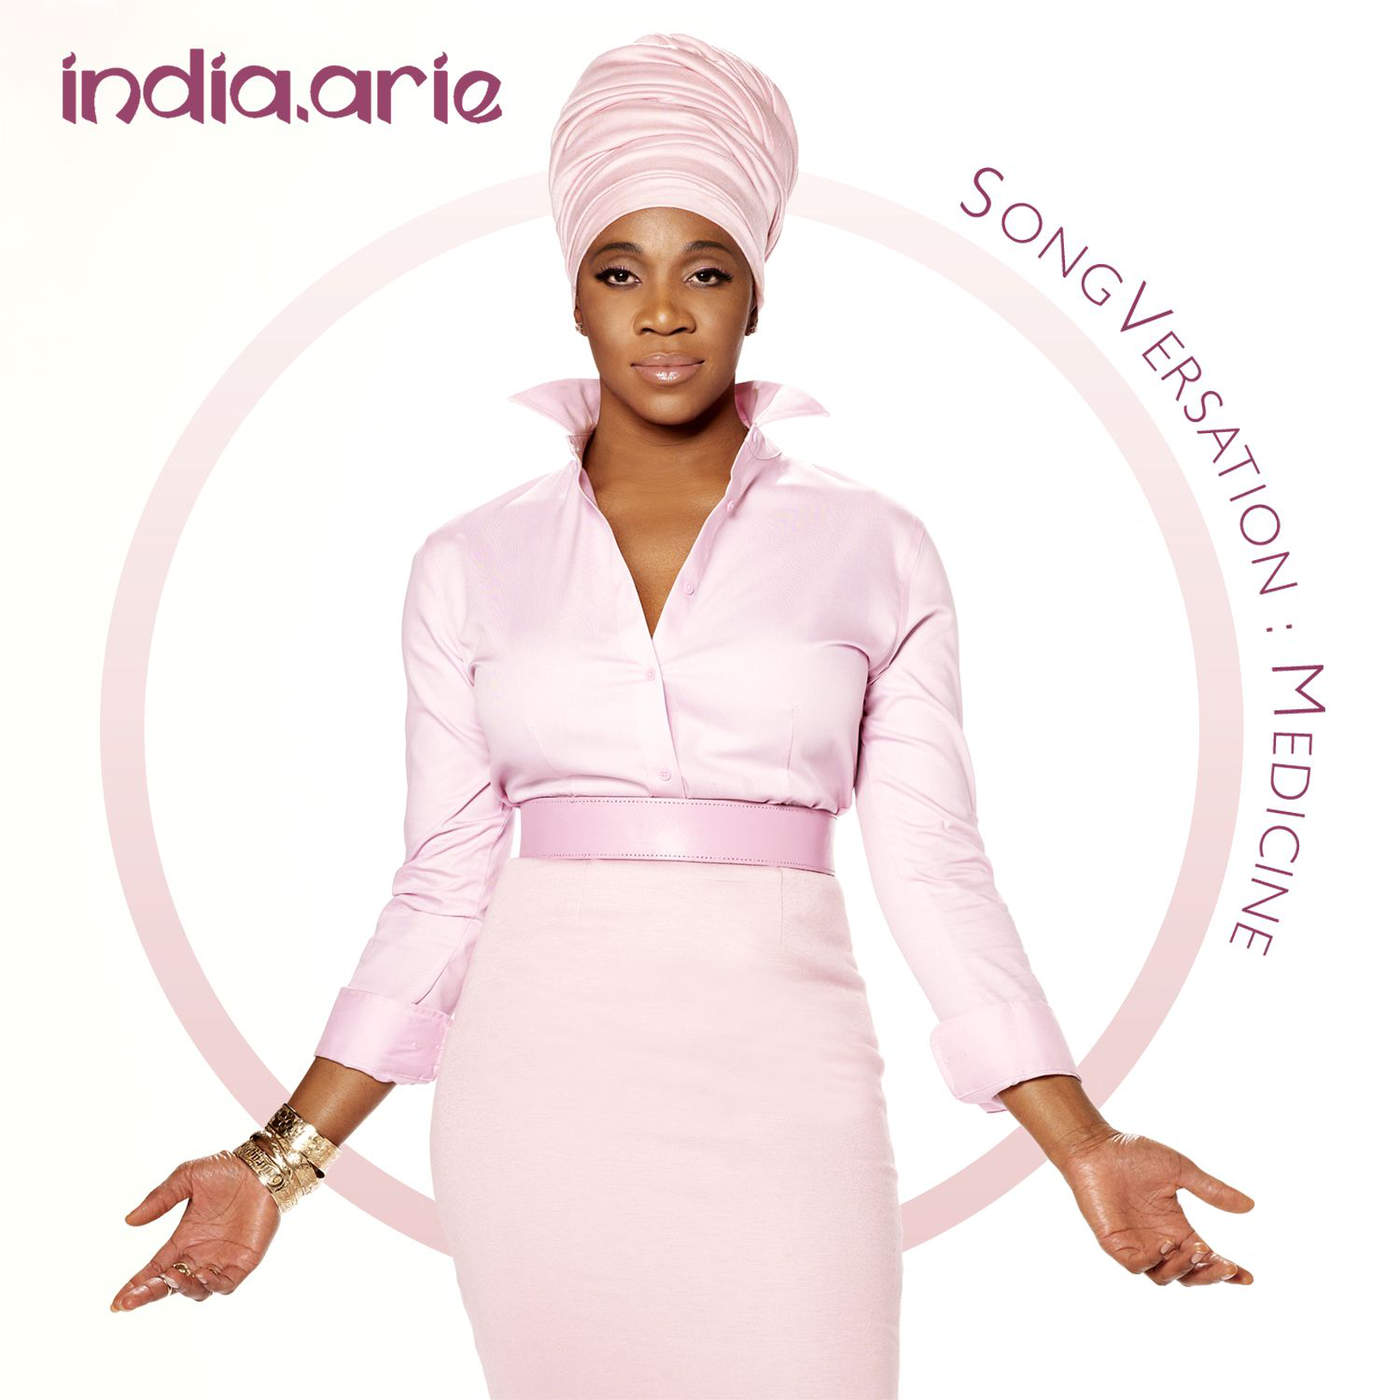 SongVersation: Medicine - India.Arie